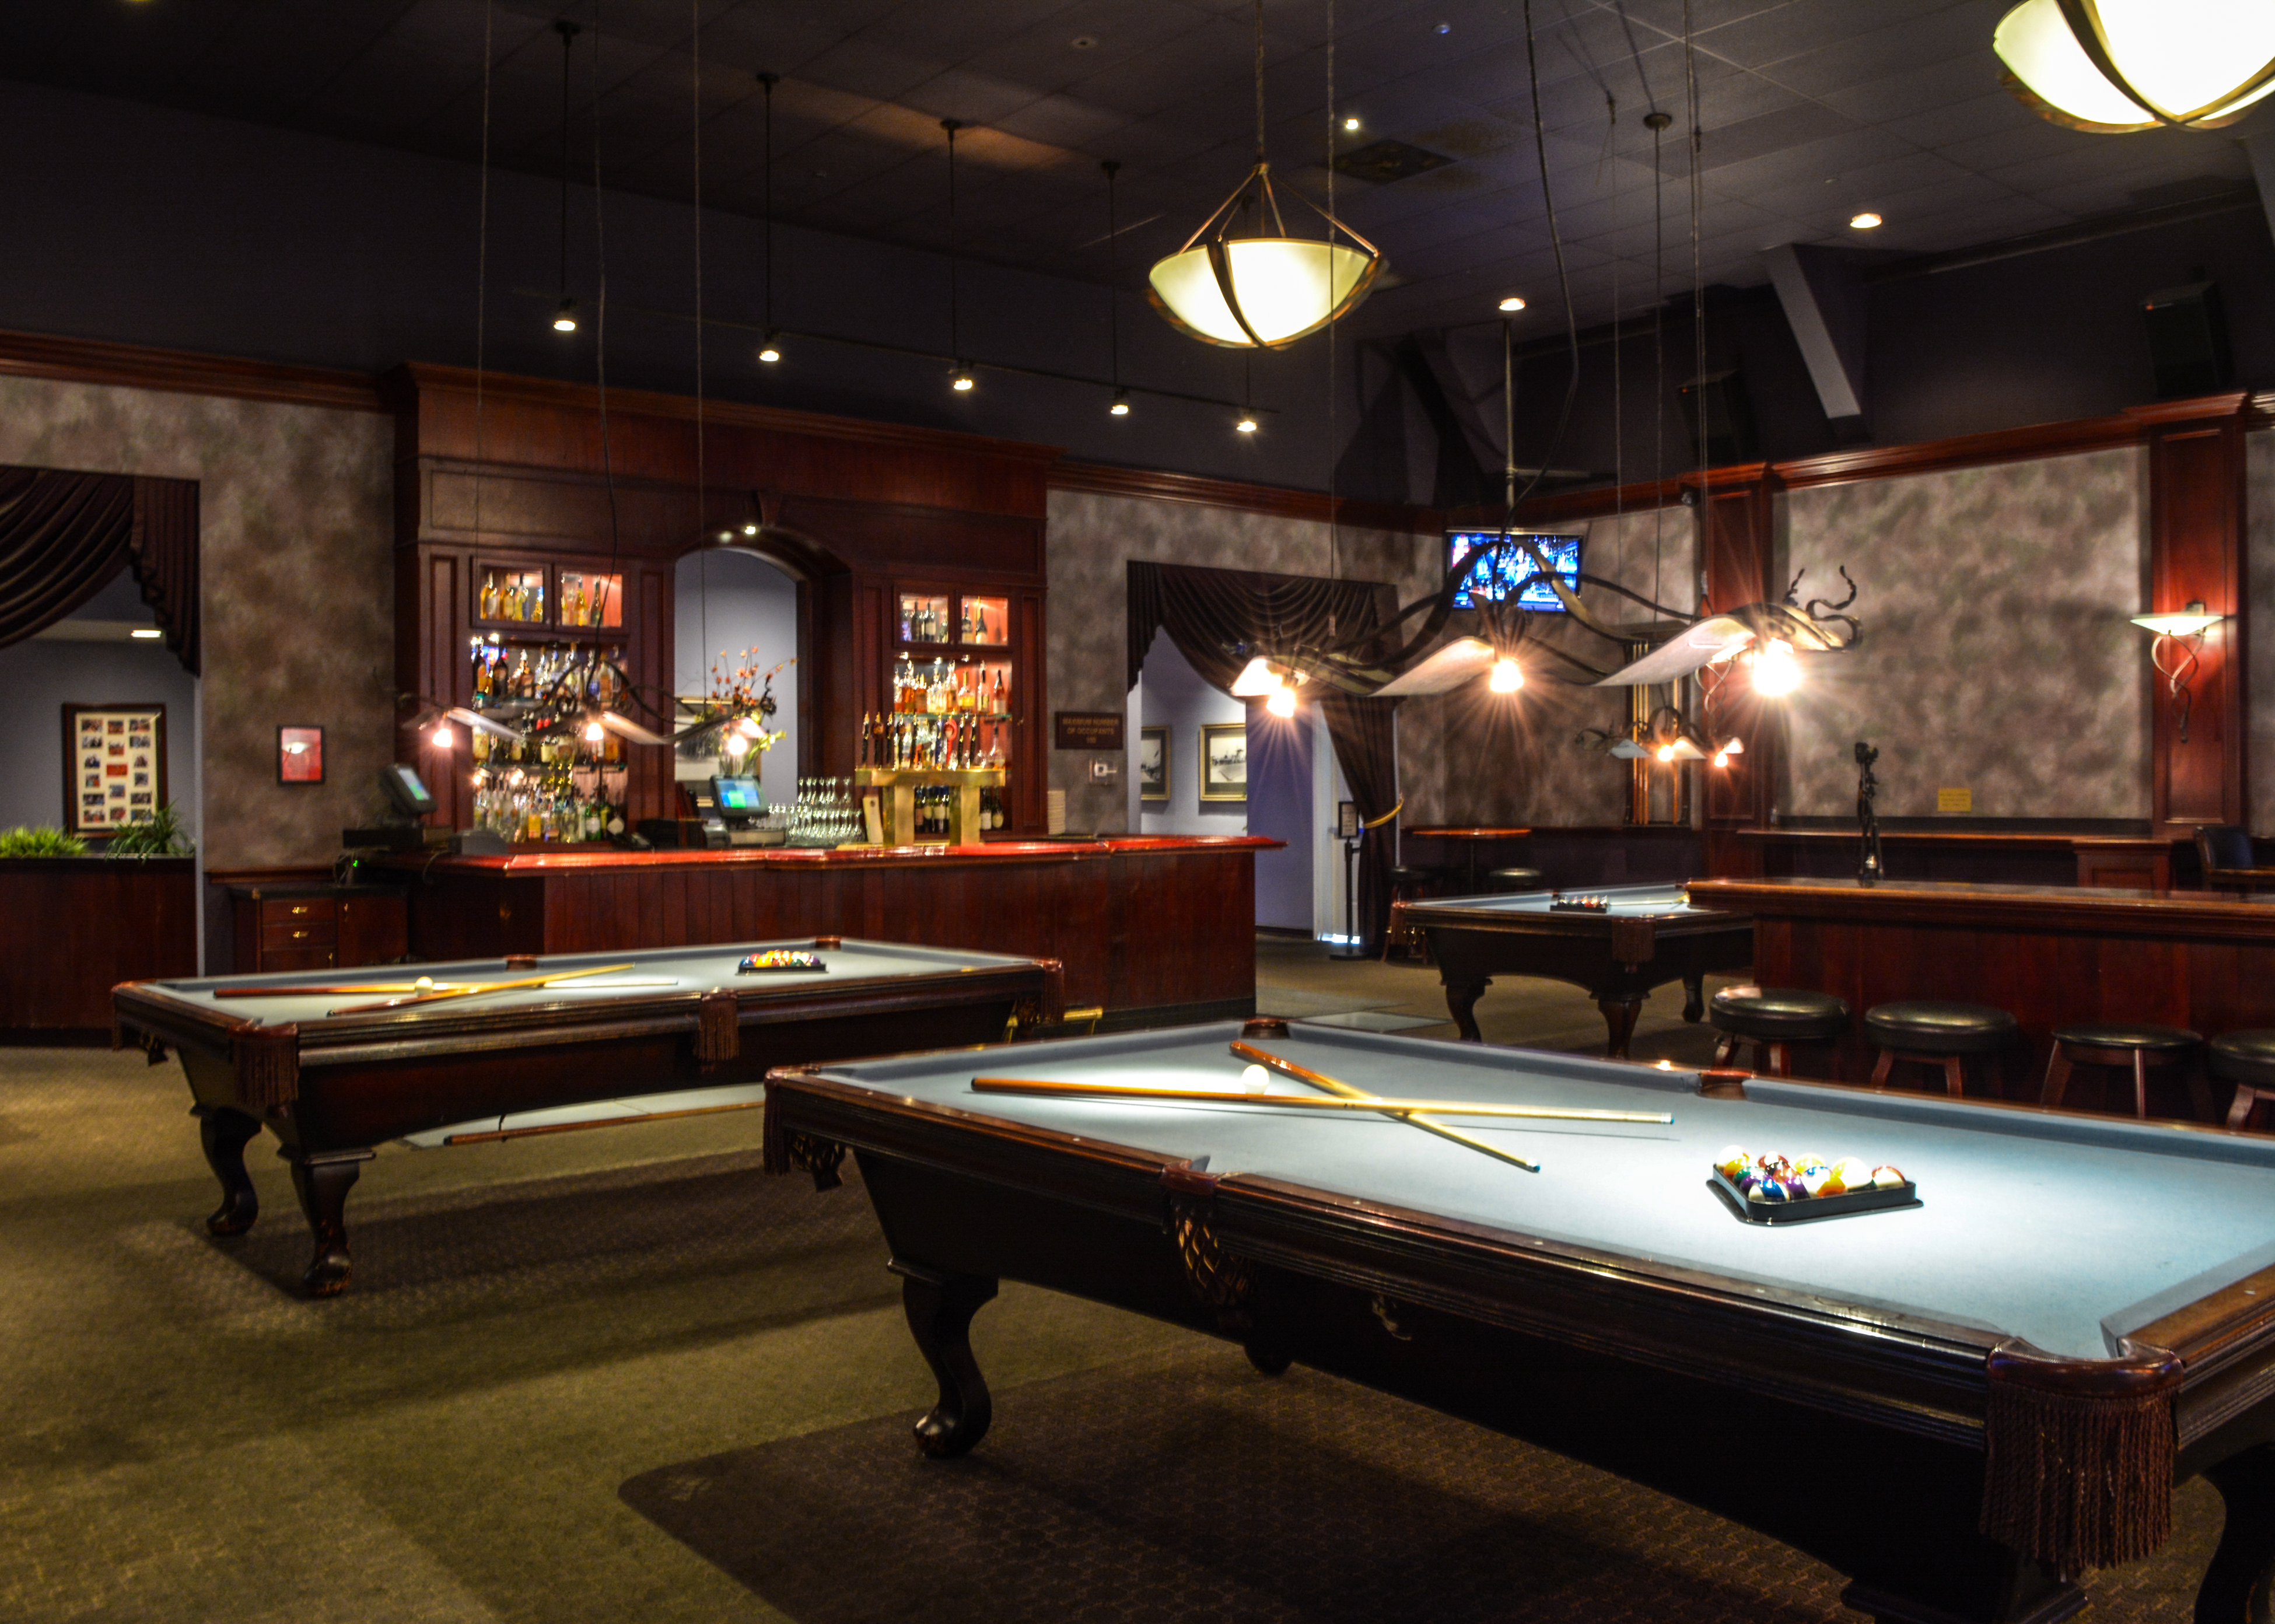 billiard rack pools mcgill aramith multi cross cheap chalk sheerline table balls secondhand slate holders cue second new barton cues hand tables triangle bmg brush rest pool